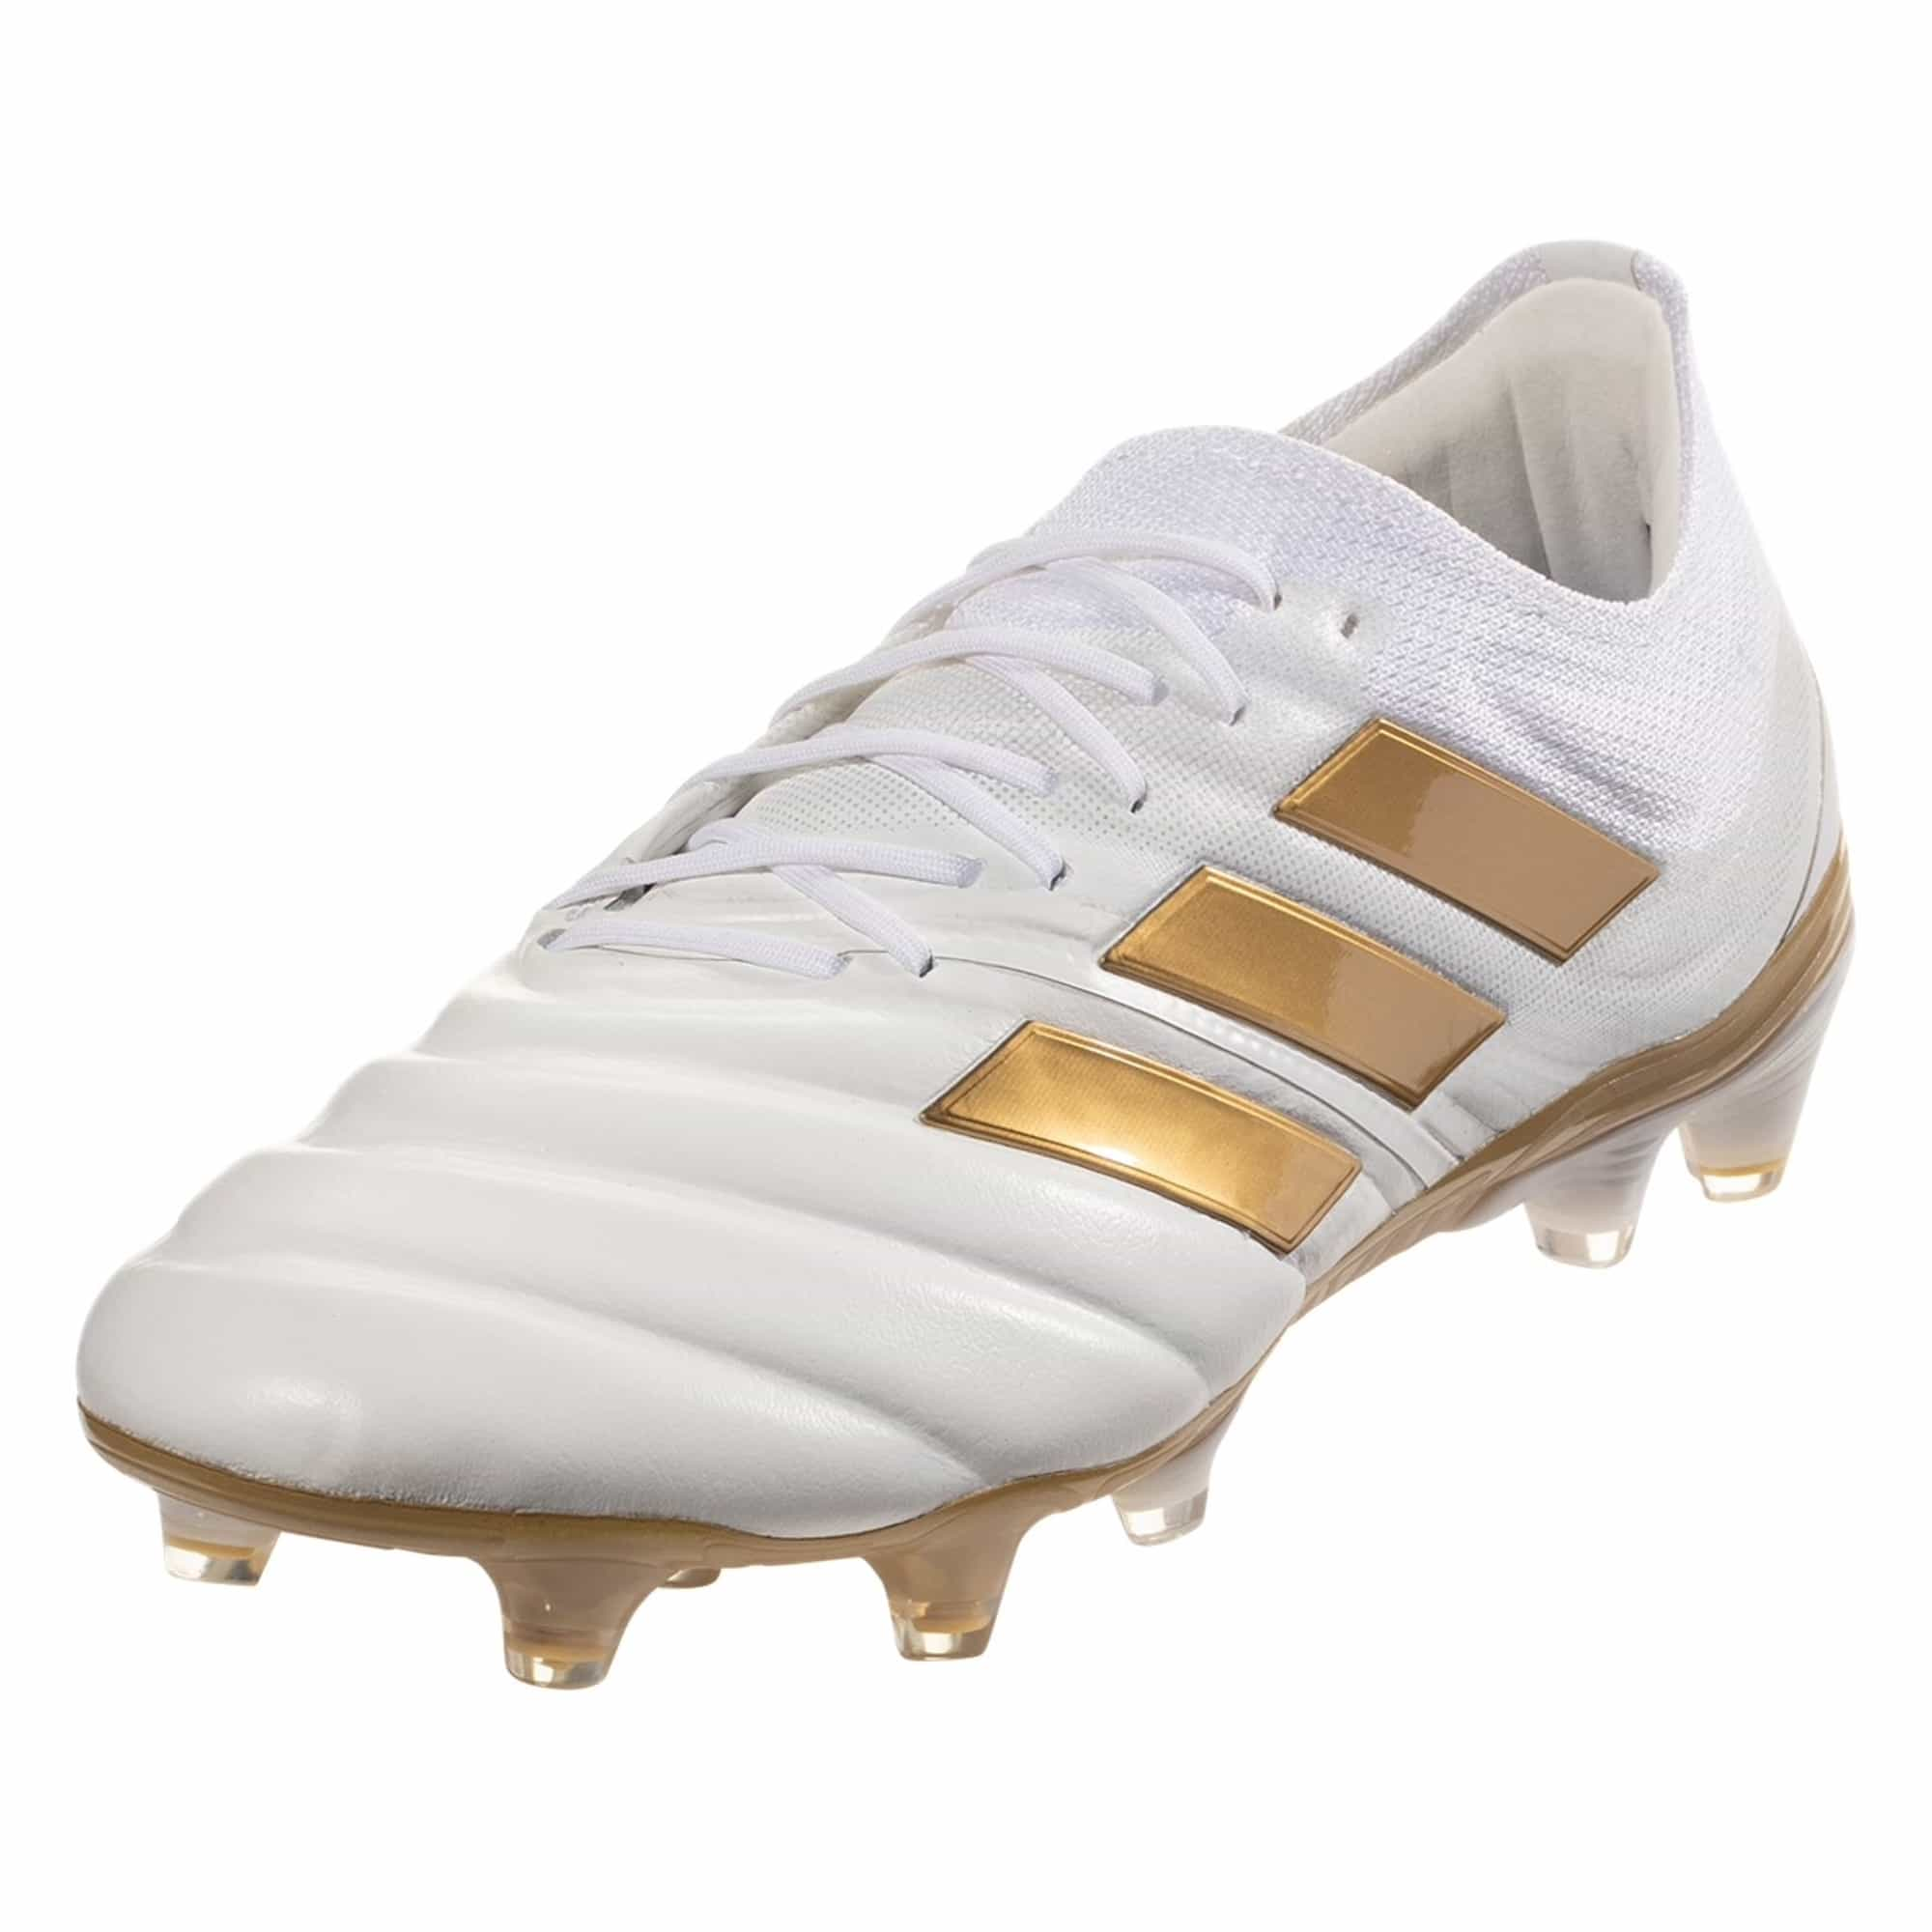 adidas Copa 19.1 FG Firm Ground Soccer Cleat - White / Metallic Gold / Blue